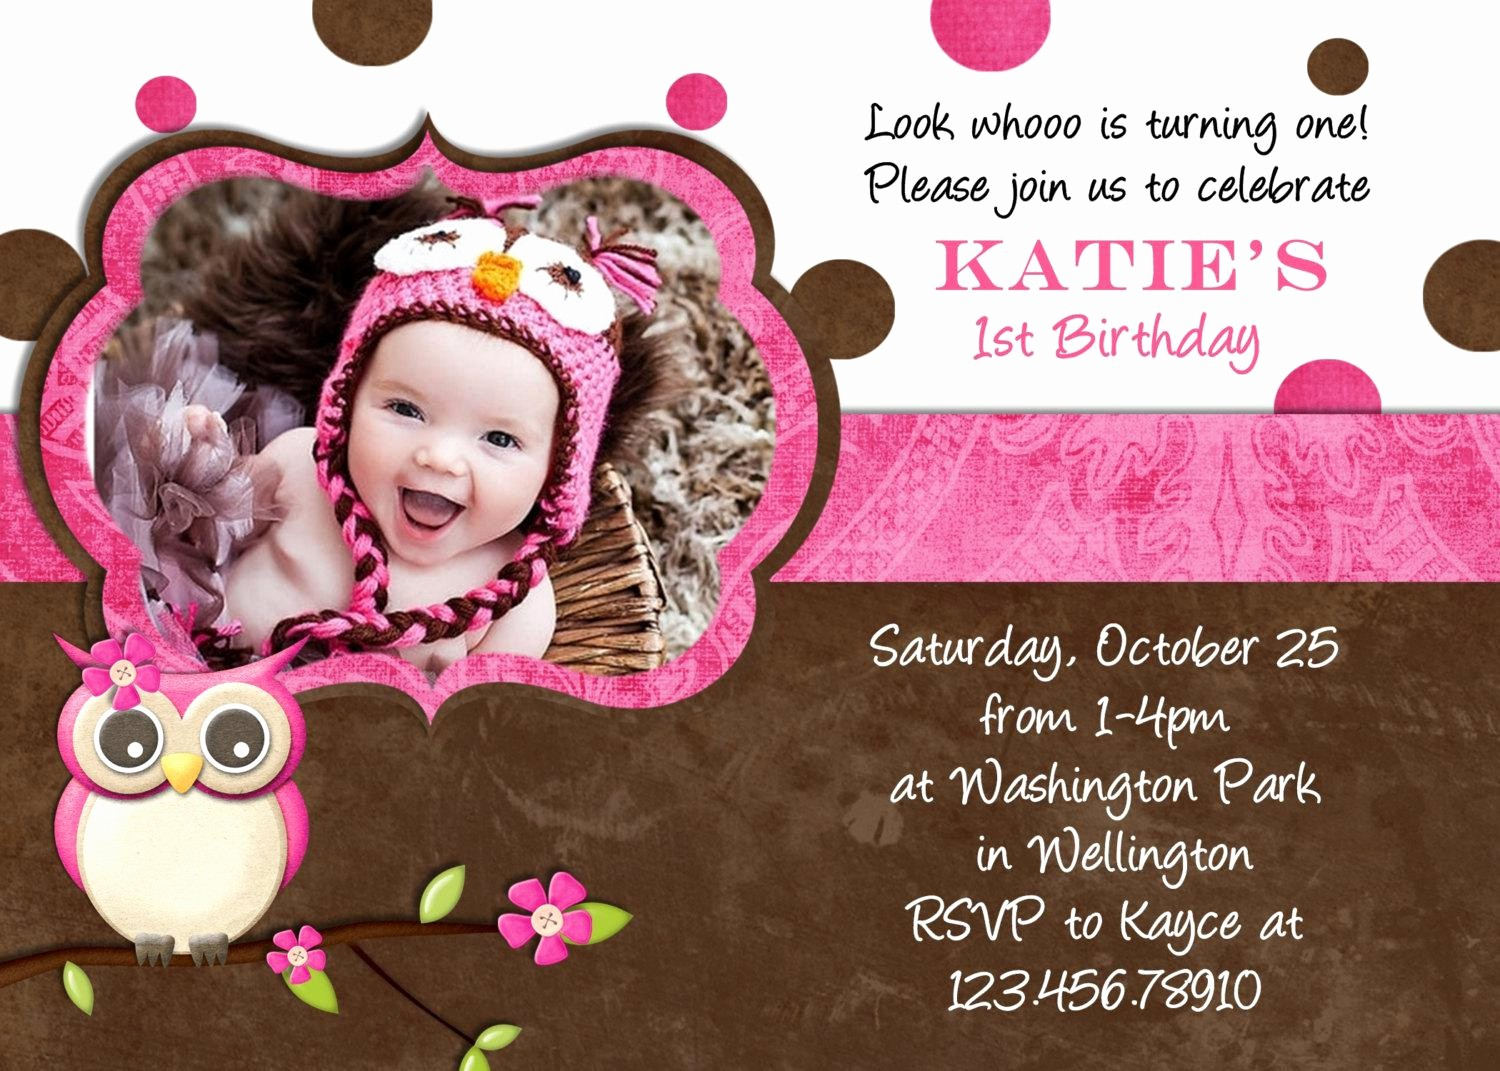 Birthday Party Invitation Card Template Lovely 20 Birthday Invitations Cards – Sample Wording Printable